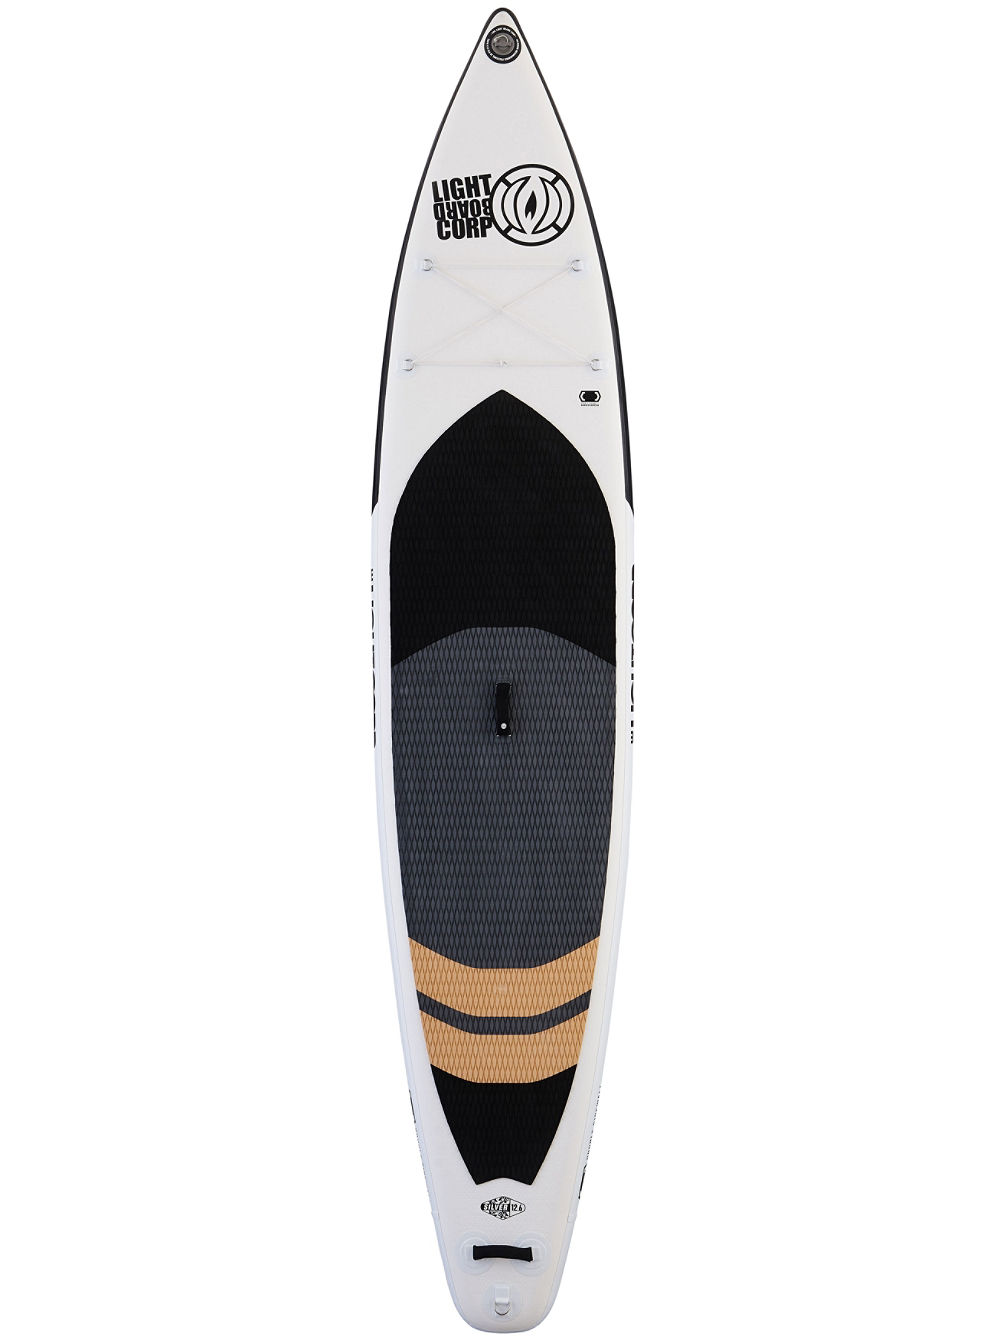 Tourer Silver 12.6 SUP Board